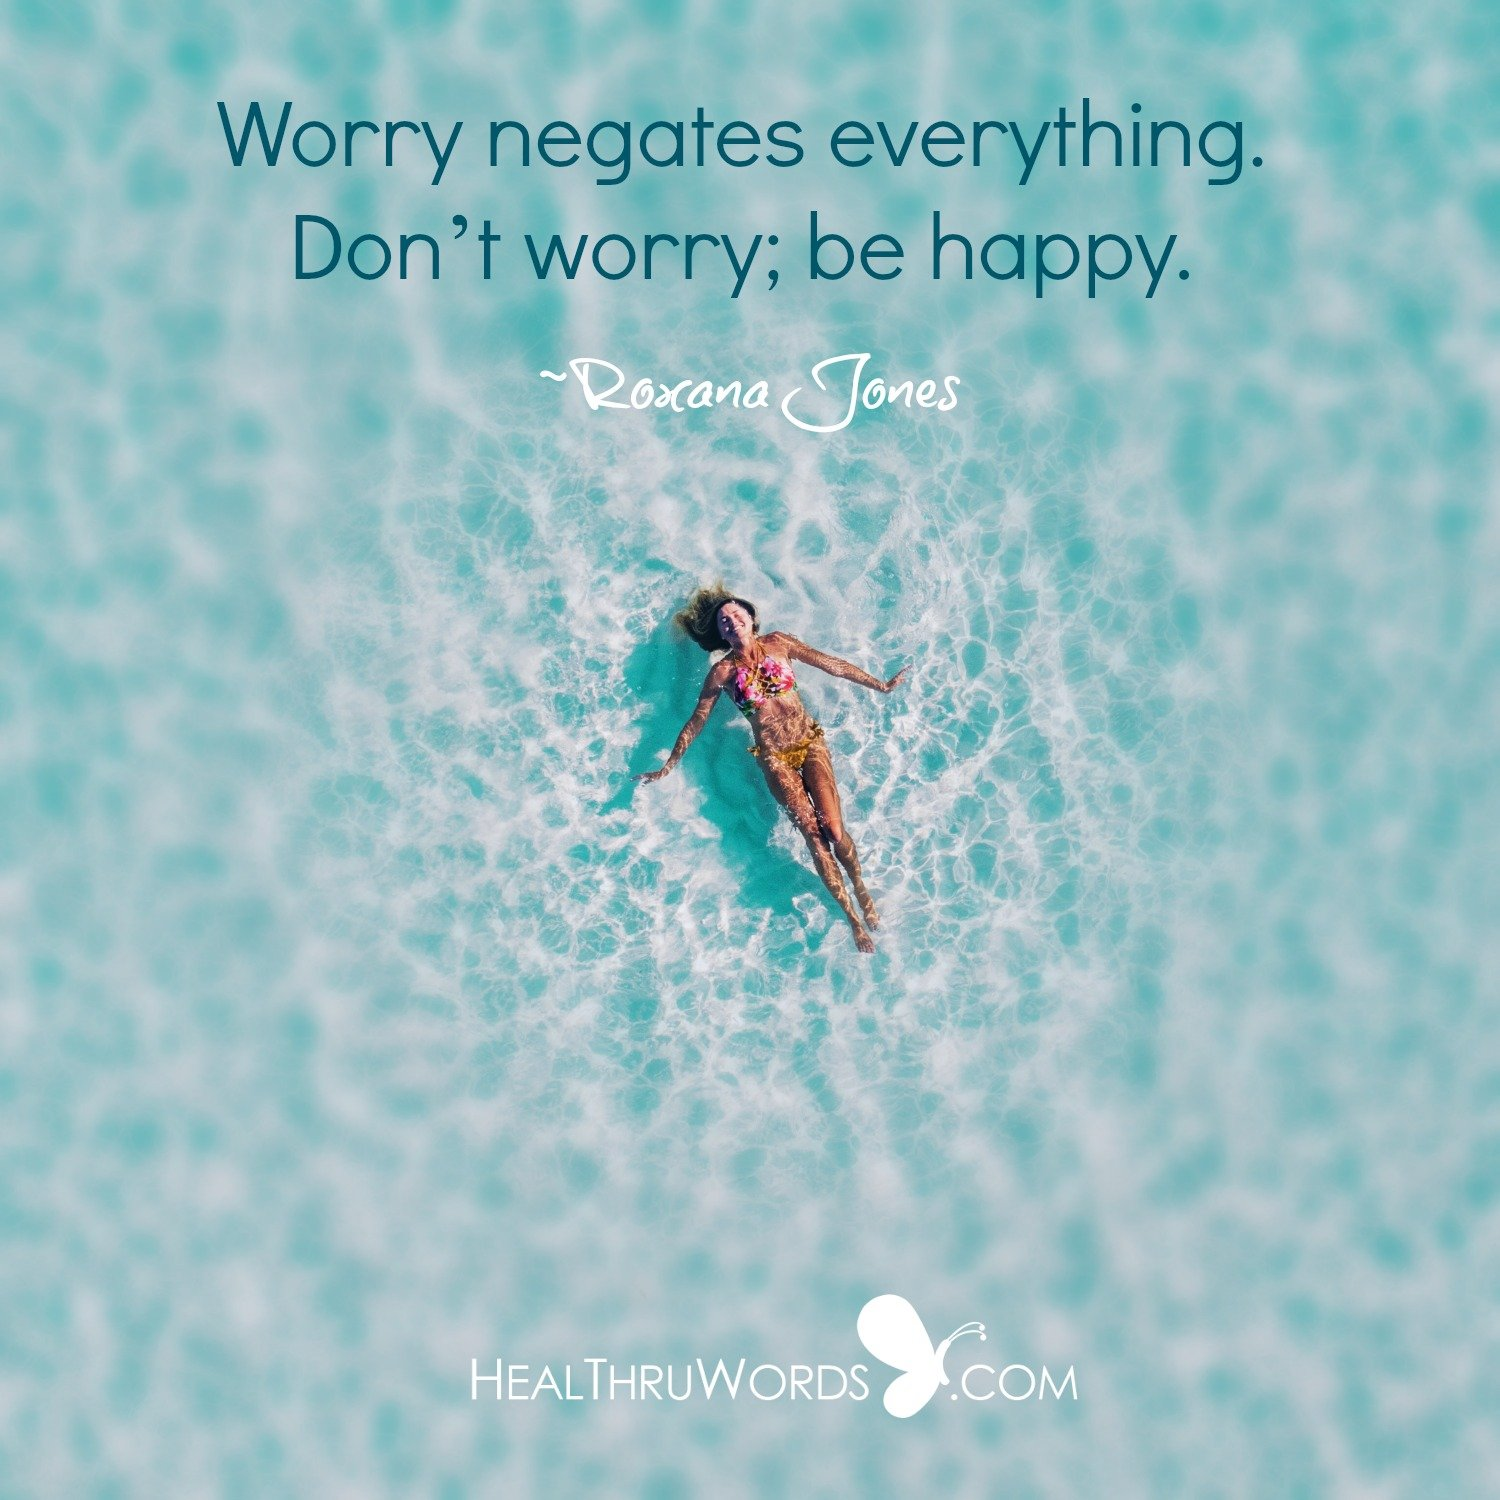 Inspirational Image: Worry Free Zone